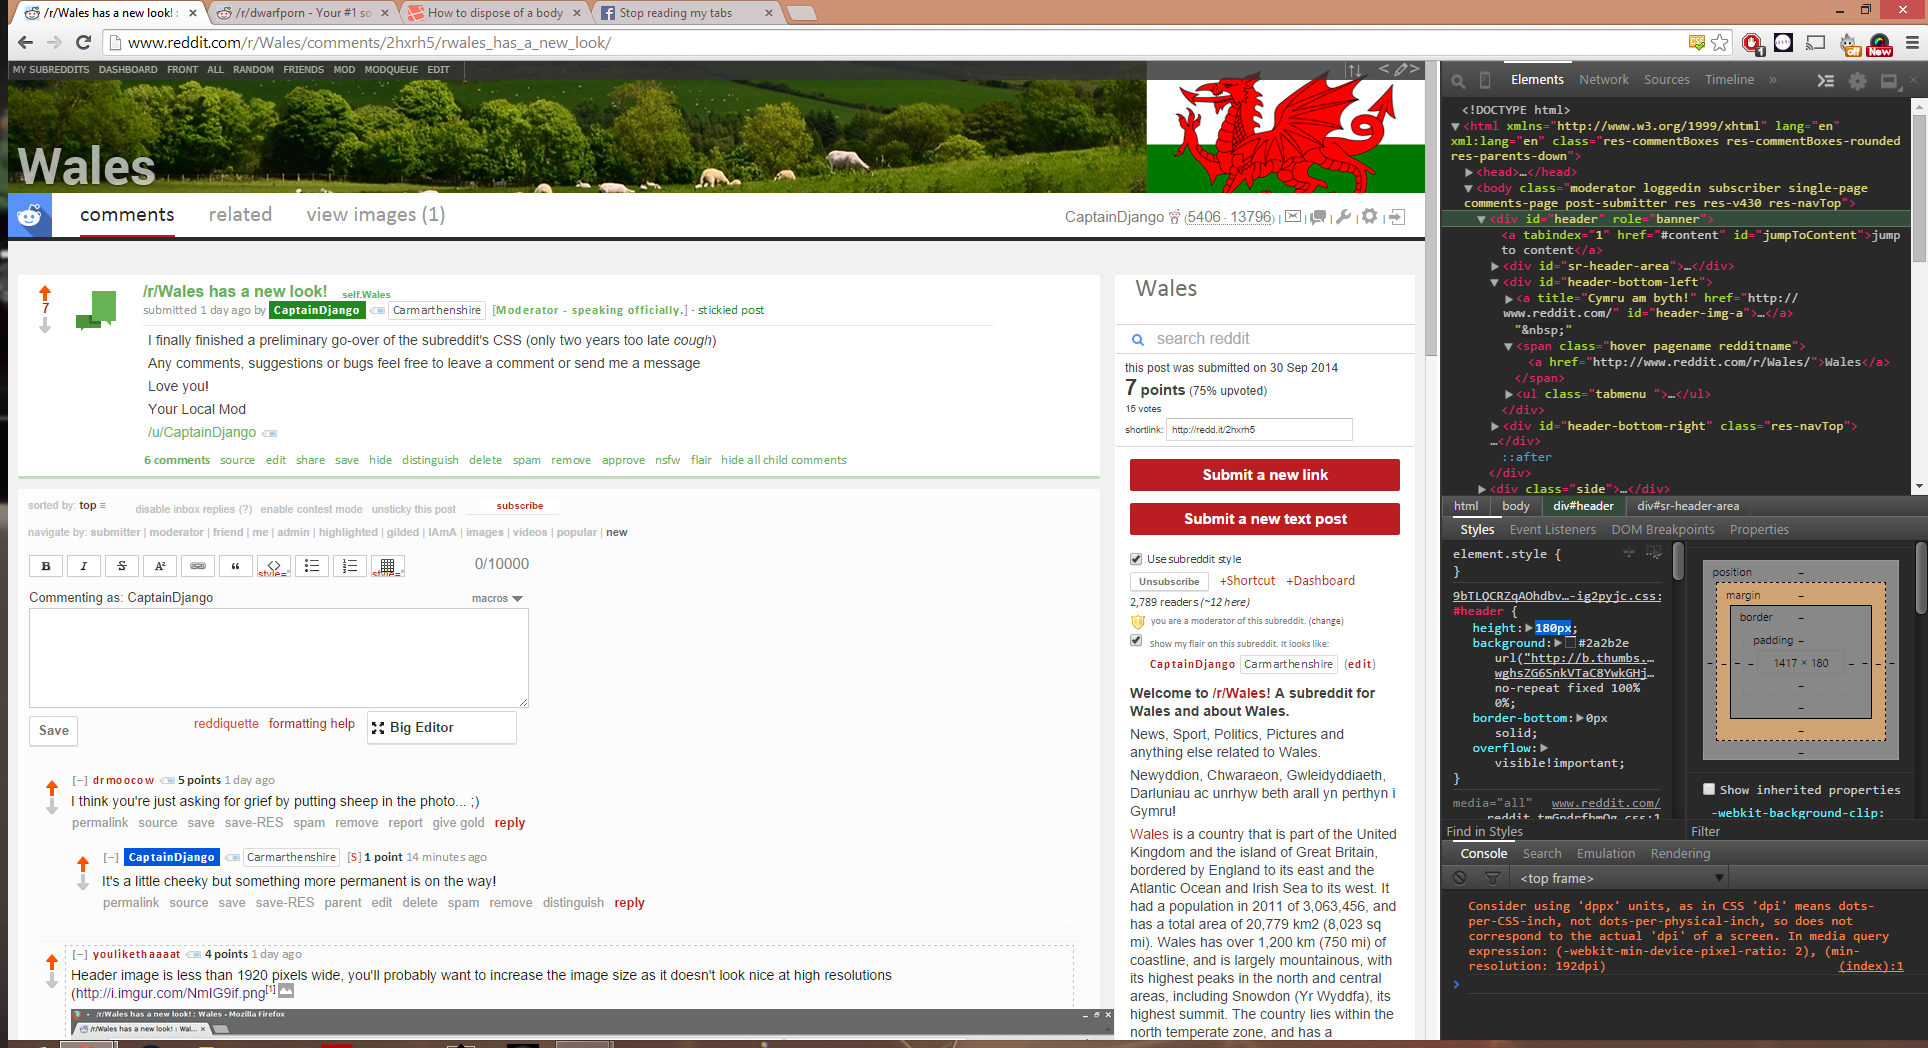 r/Wales has a new look! : Wales.